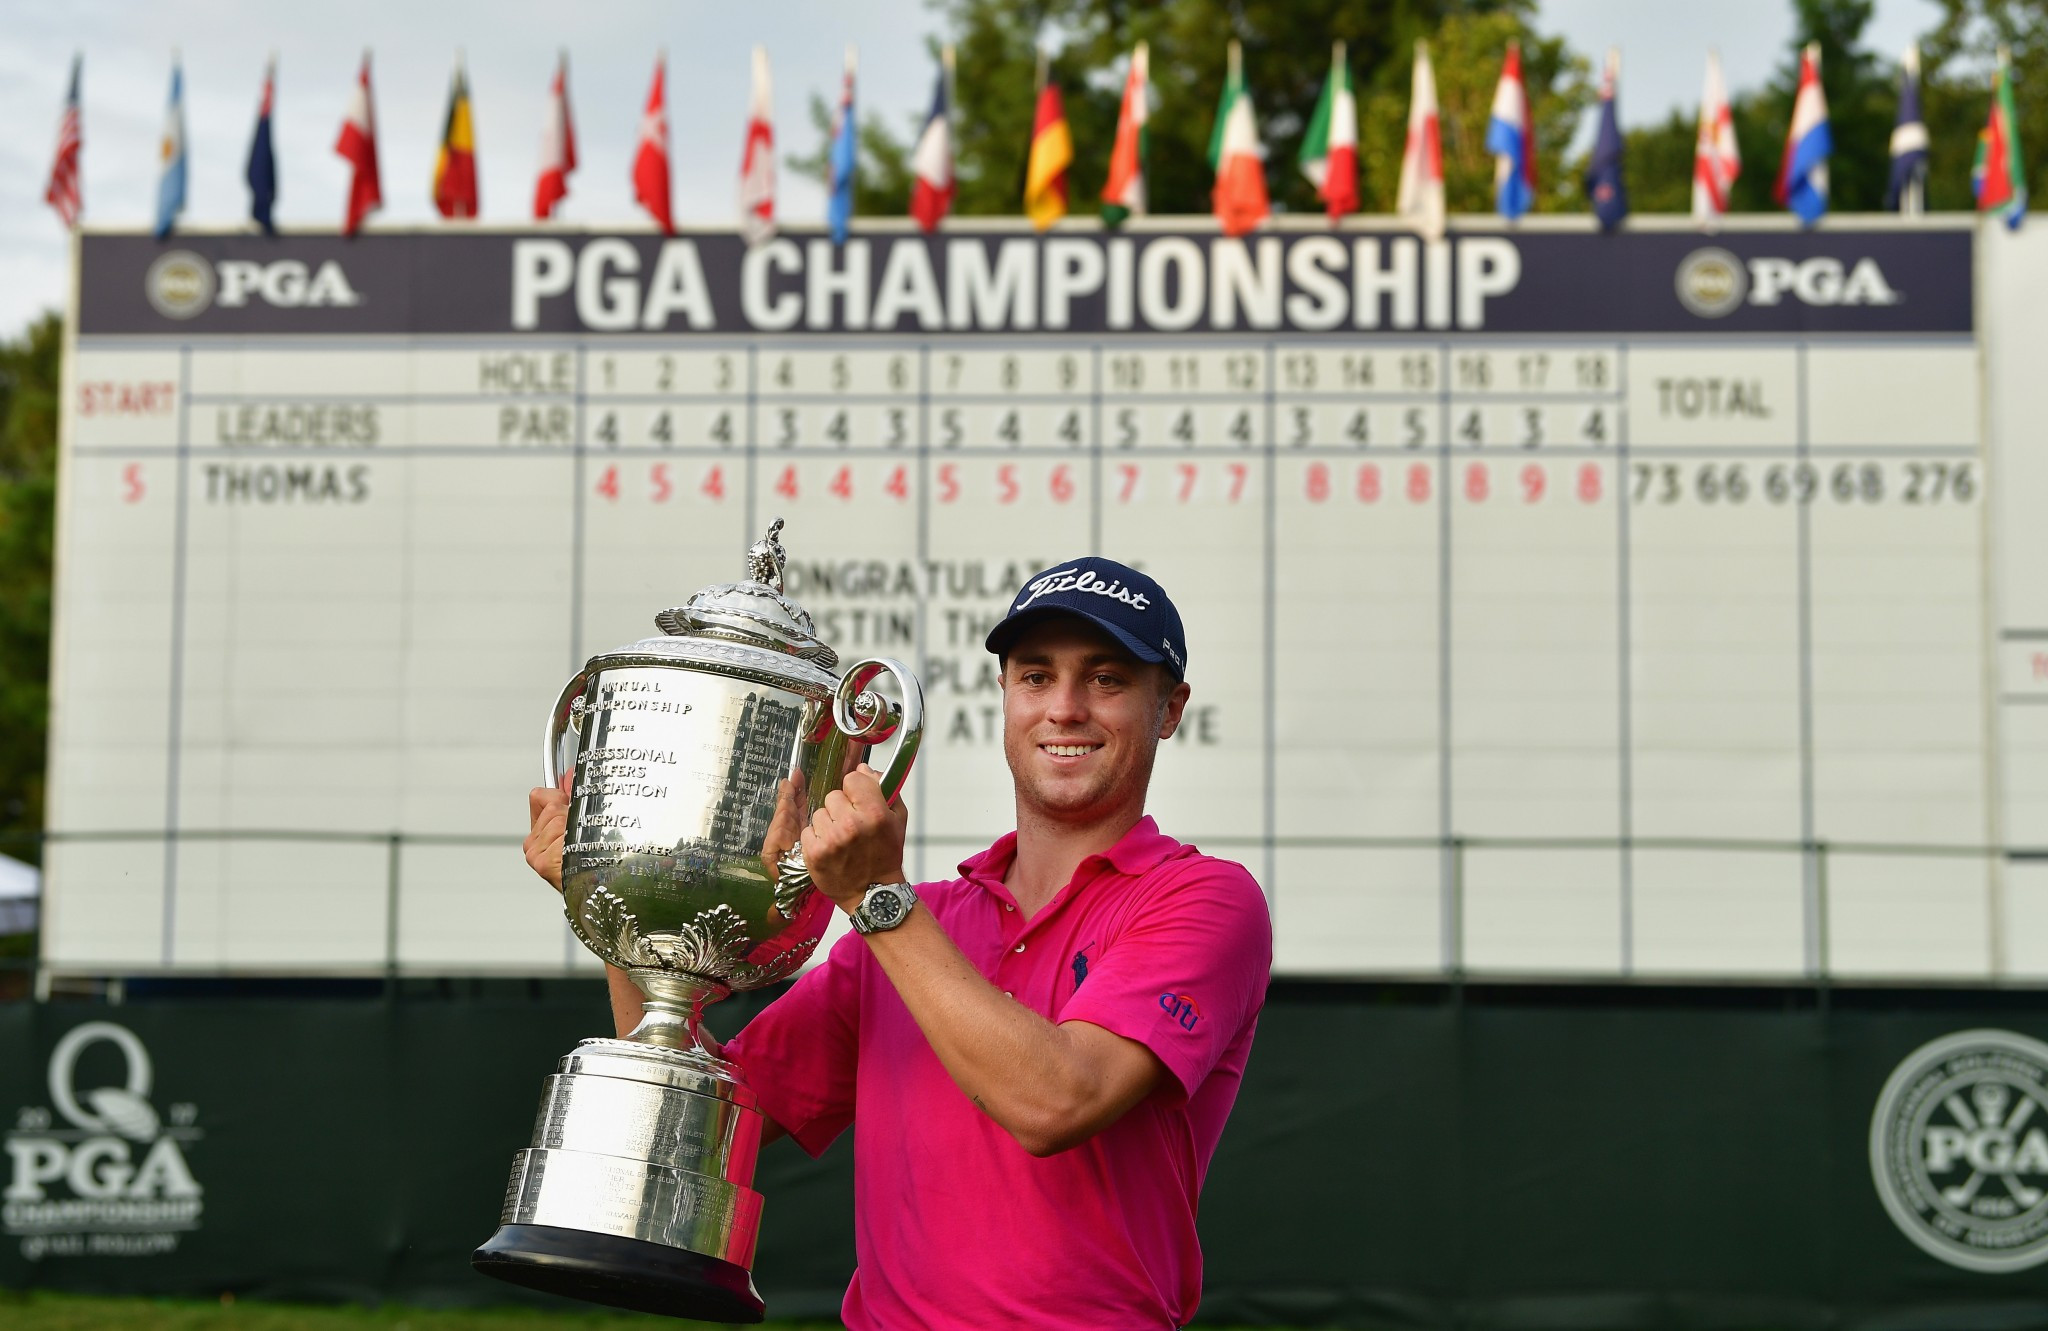 Thomas triumphs at PGA Championship to win first major